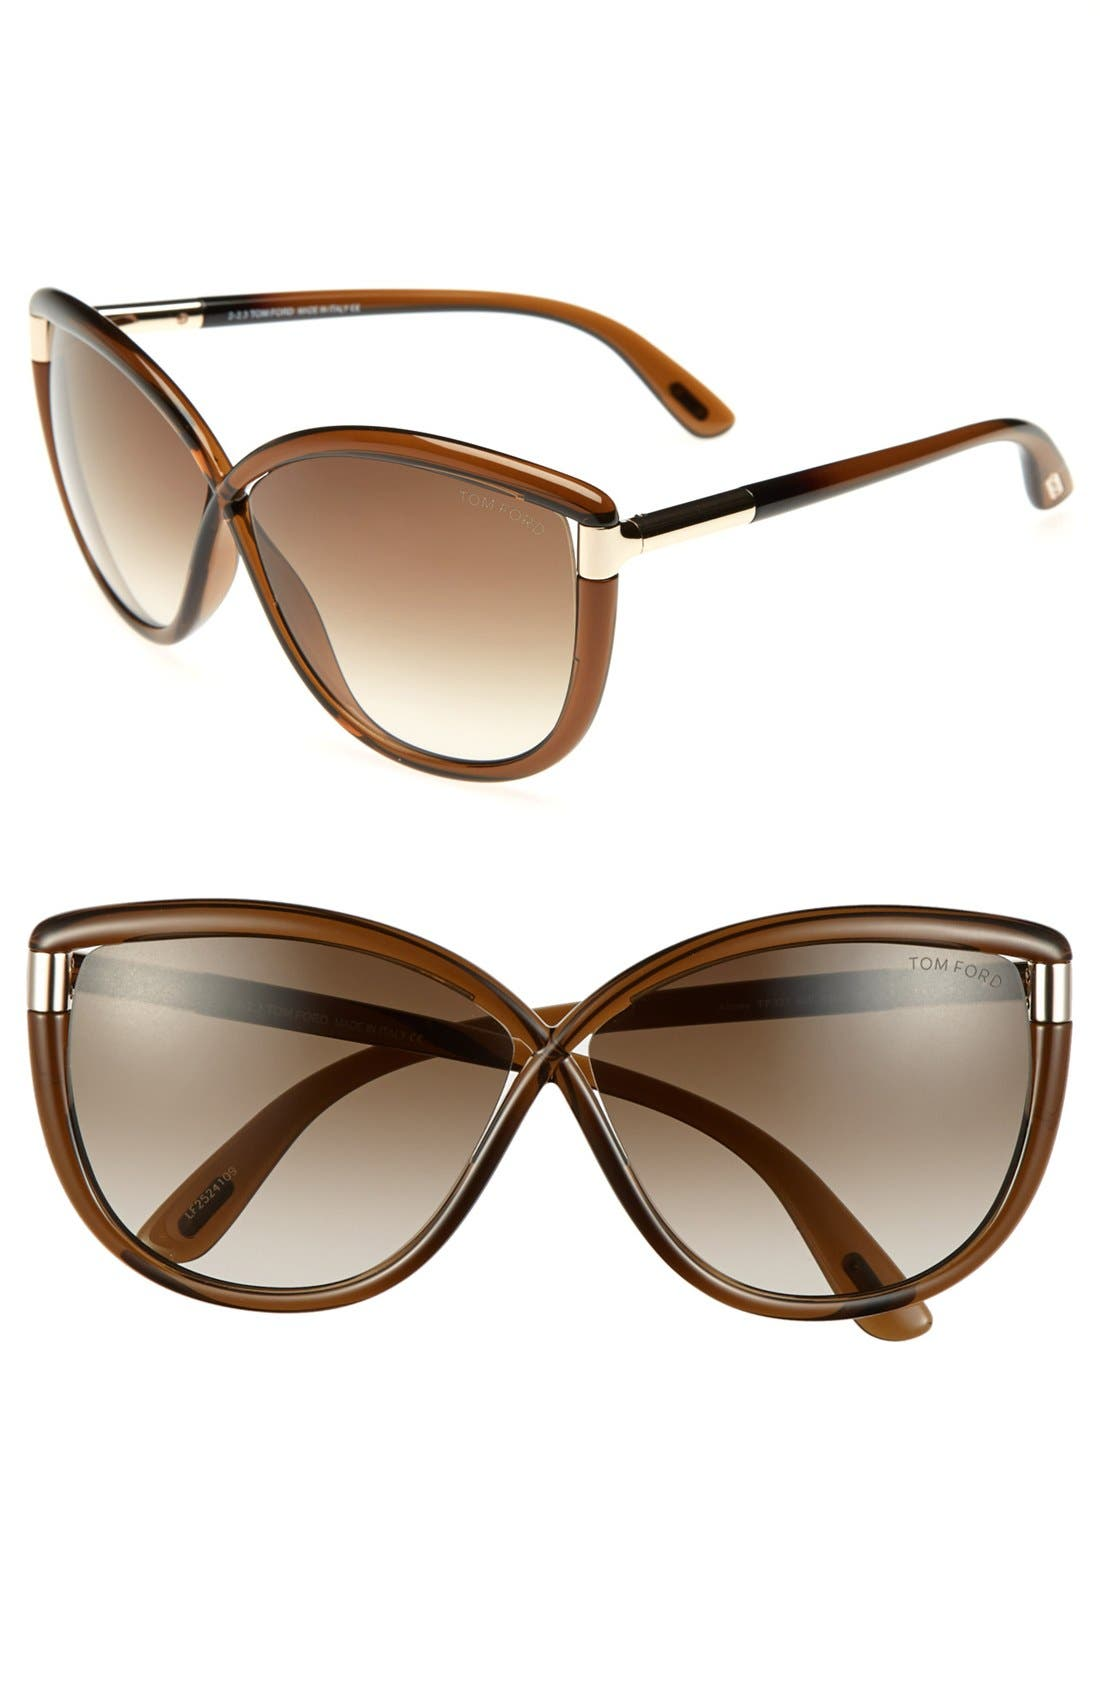 Main Image - Tom Ford 'Abbey' 63mm Oversized Sunglasses